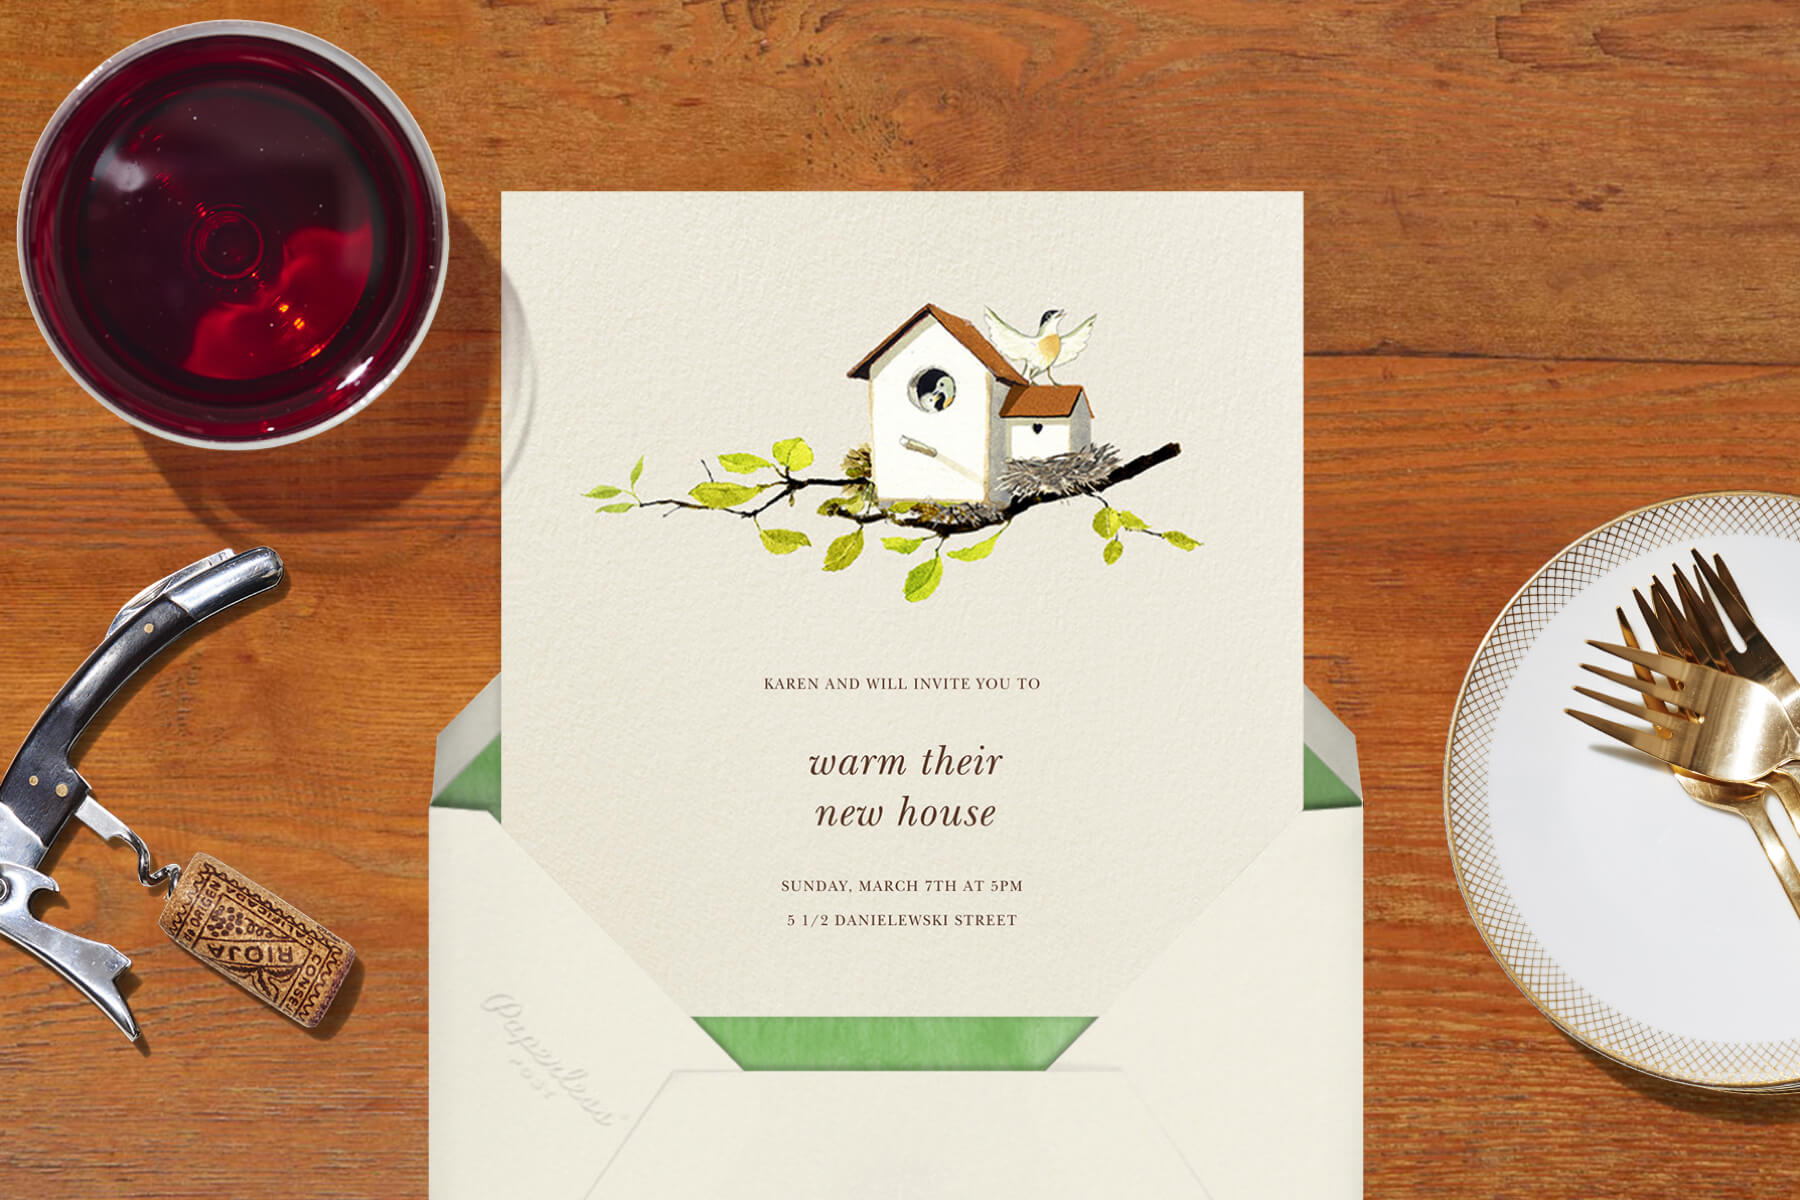 Invitation ideas and hosting tips for the perfect housewarming party